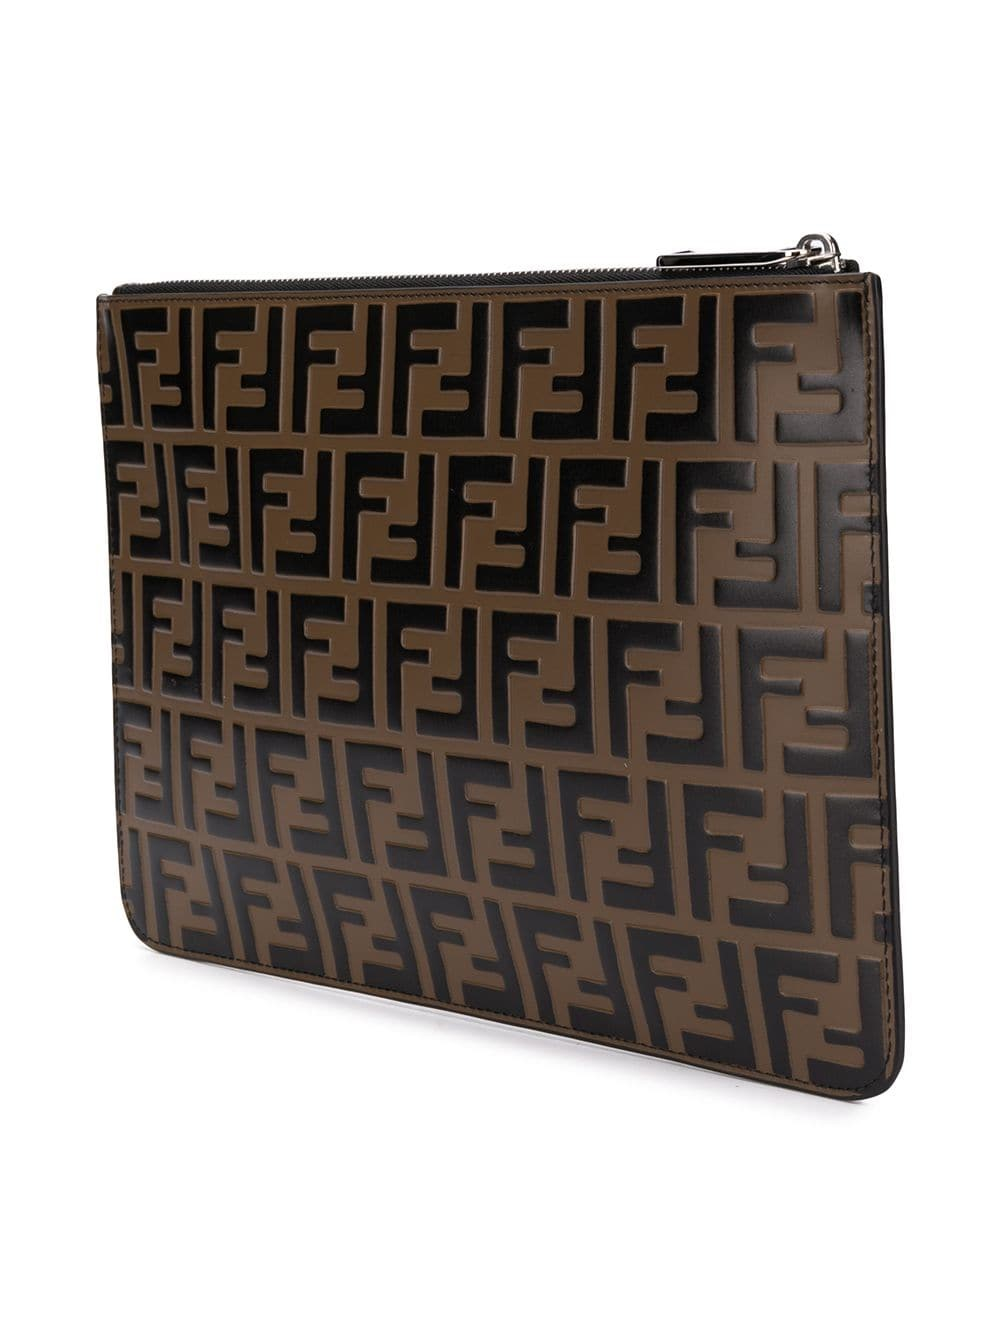 339070ce3f5510 fendi LOGO CLUTCH BAG available on montiboutique.com - 27070